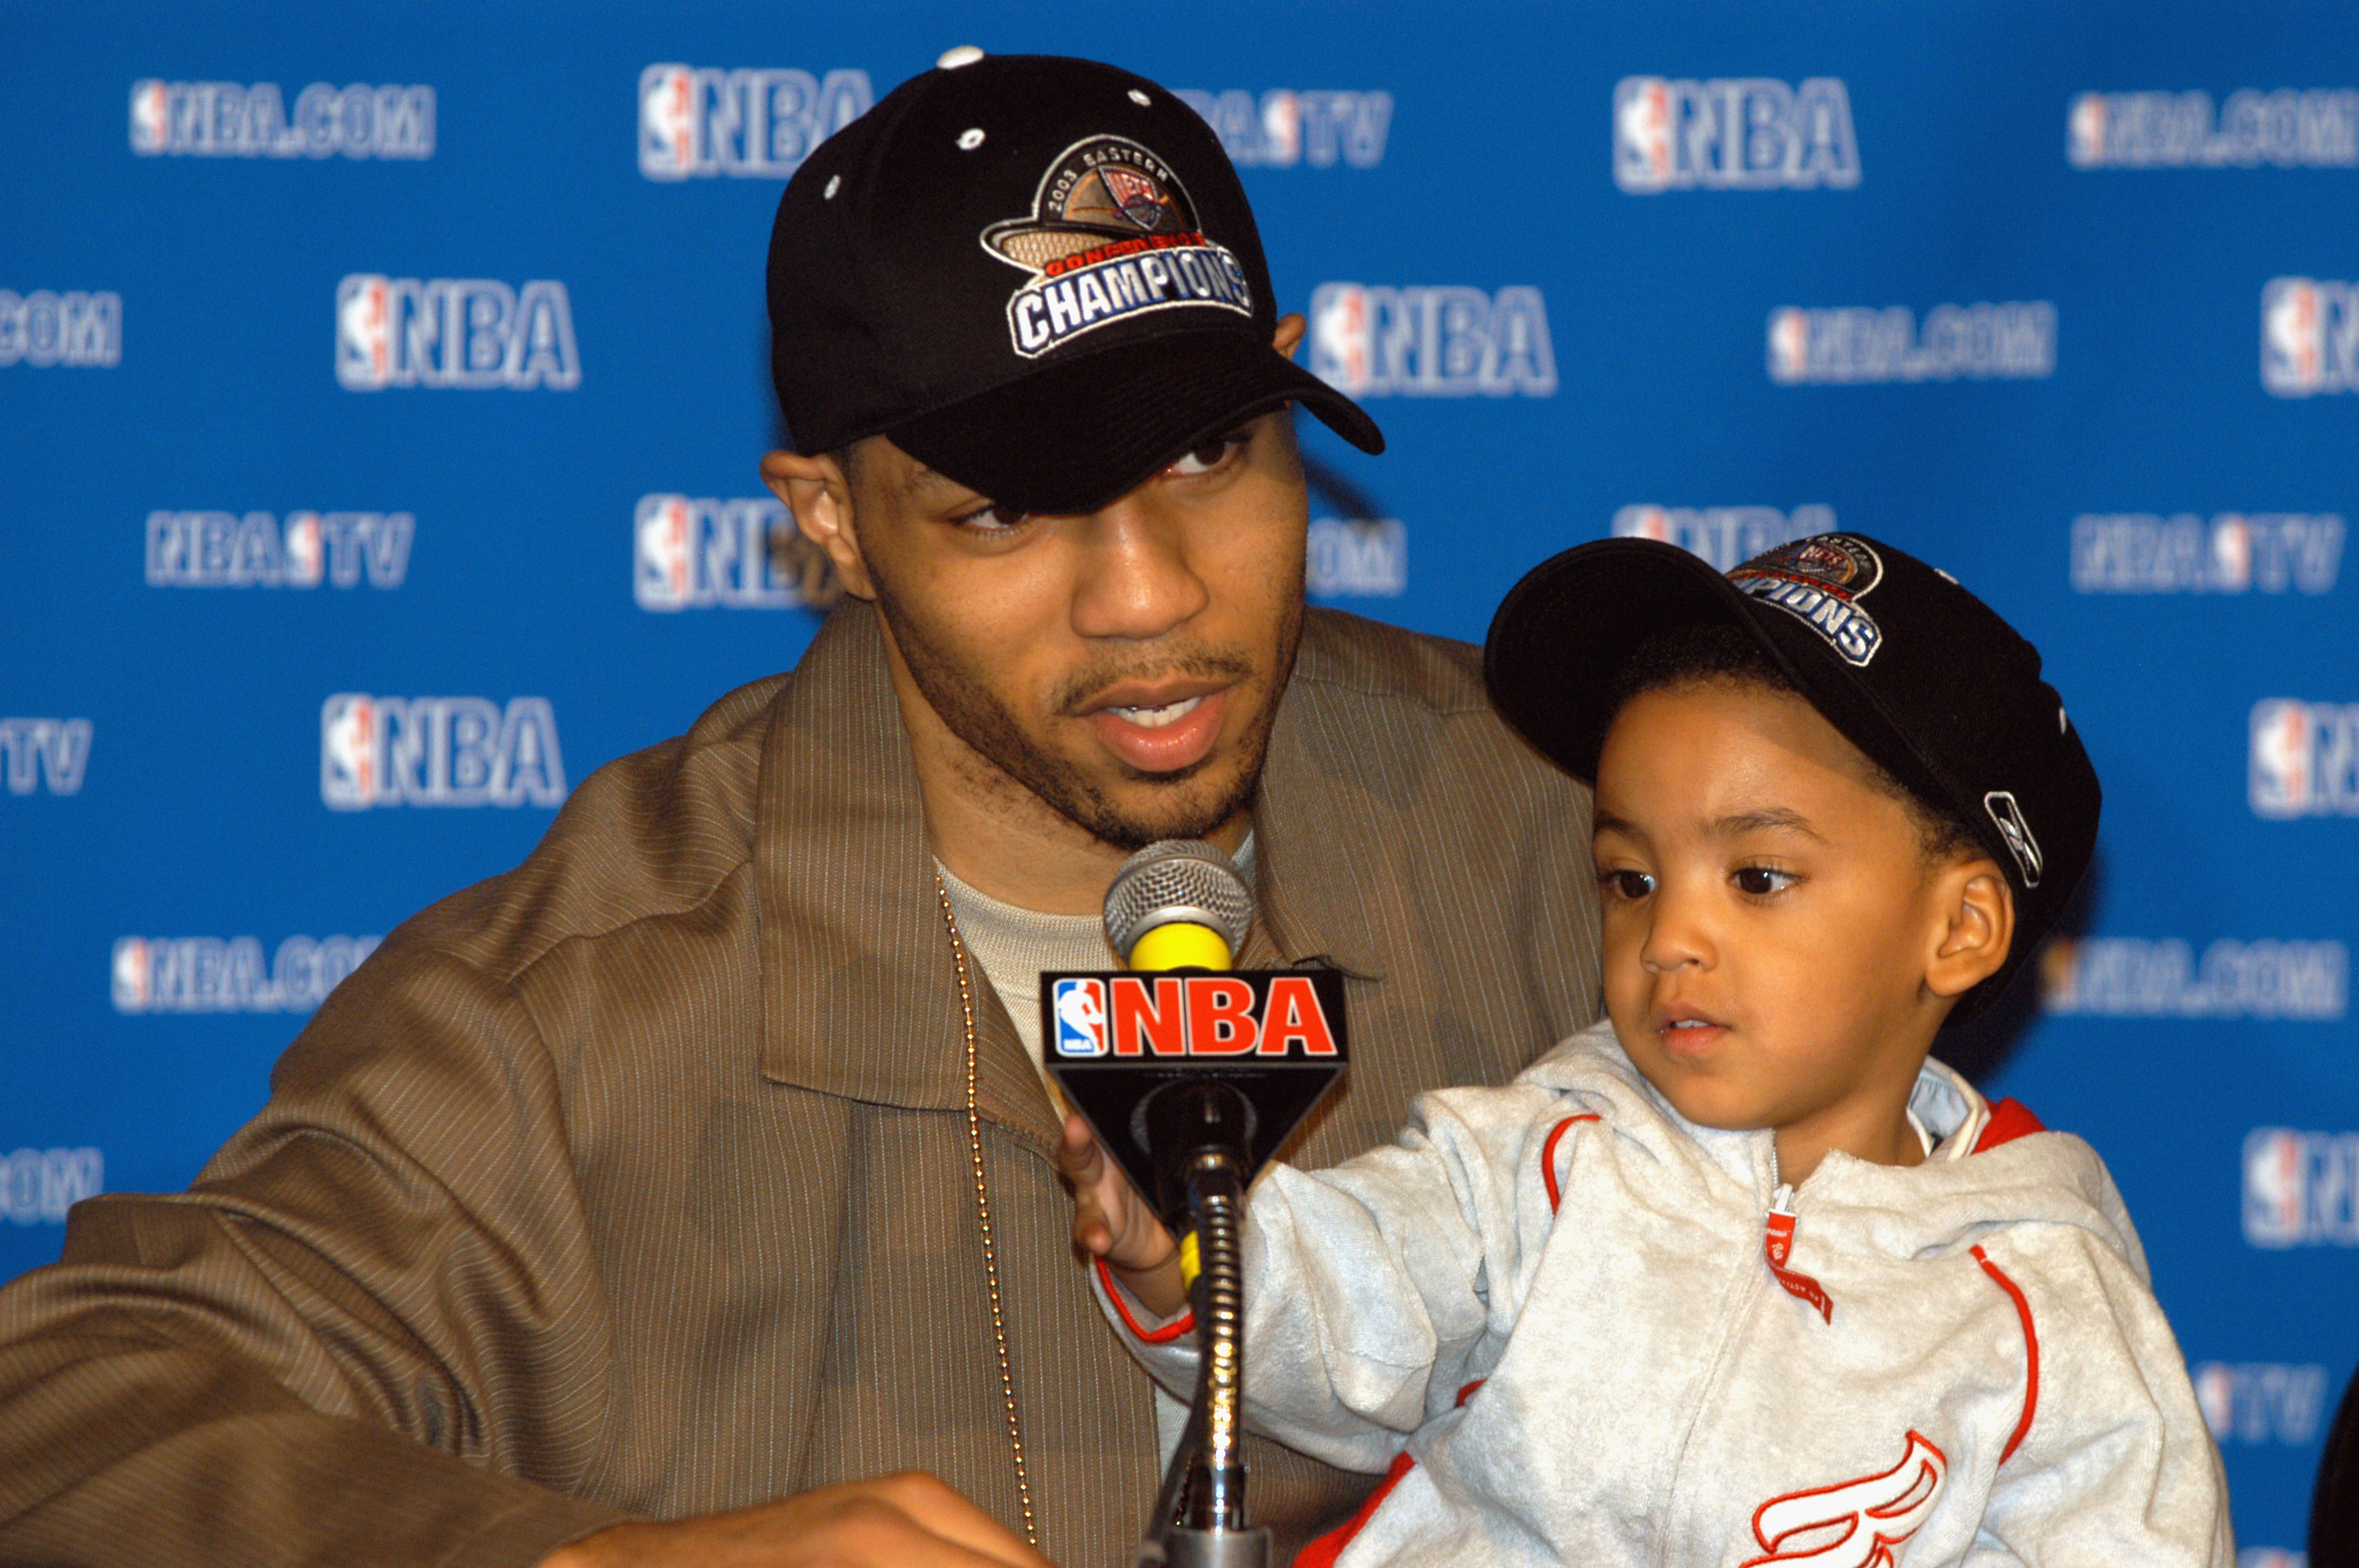 Kenyon Martin #6 of the New Jeresy Nets talks to the press while his son, Kenyon Jr., plays with the microphone after Game four of the Eastern Conference Finals against the Detroit Pistons during the 2003 NBA Playoffs at the Continental Airlines Arena on May 24, 2003 in East Rutherford, New Jersey.